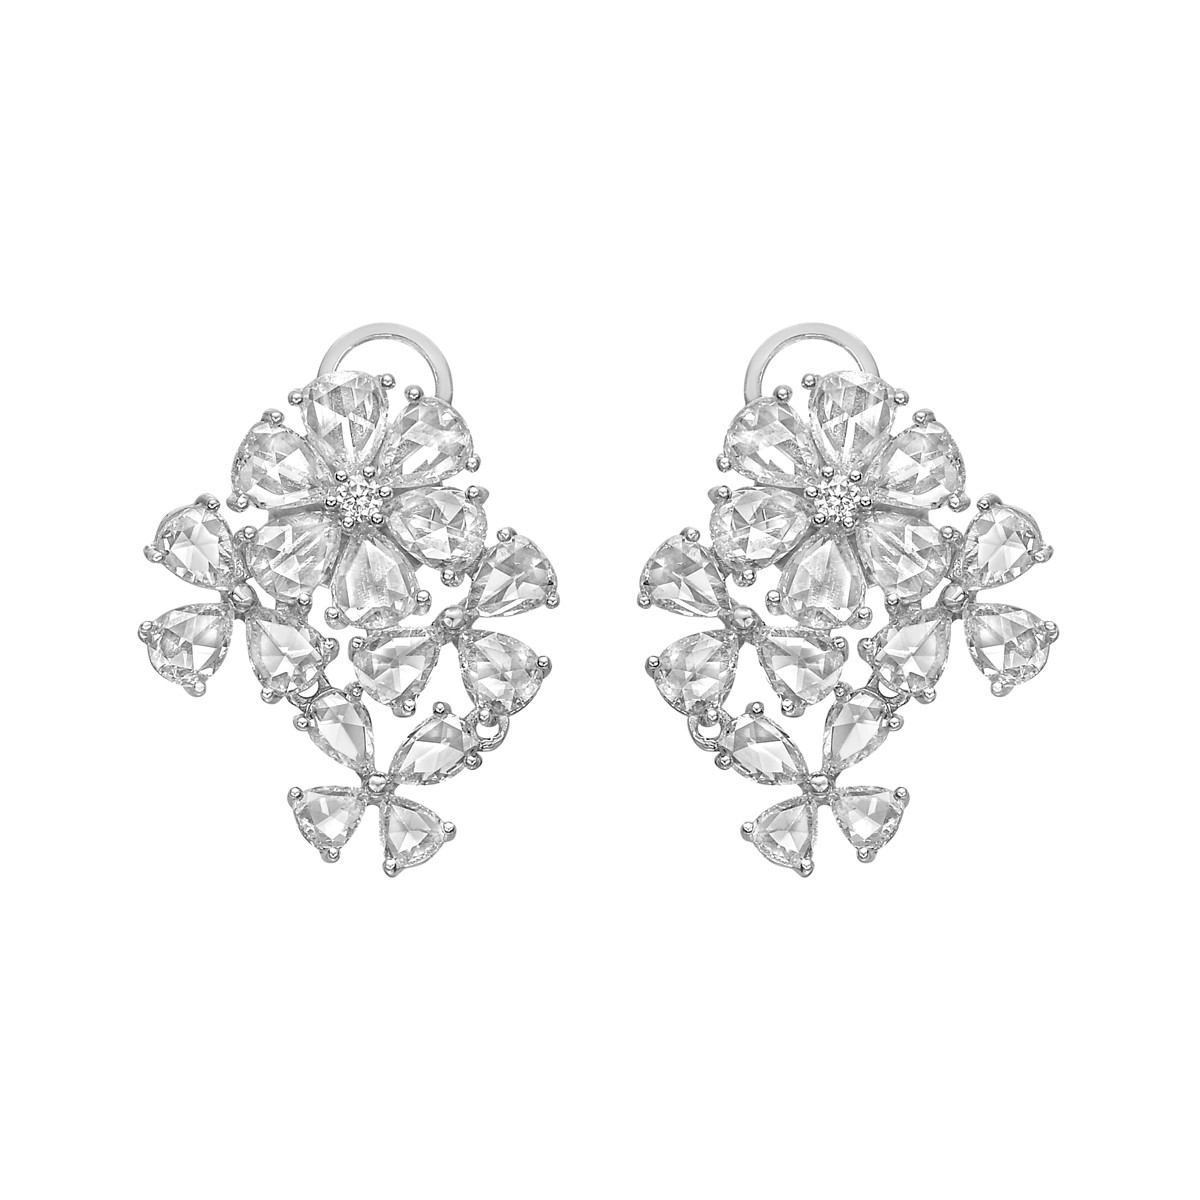 Rose-Cut Diamond 4-Flower Cluster Earrings